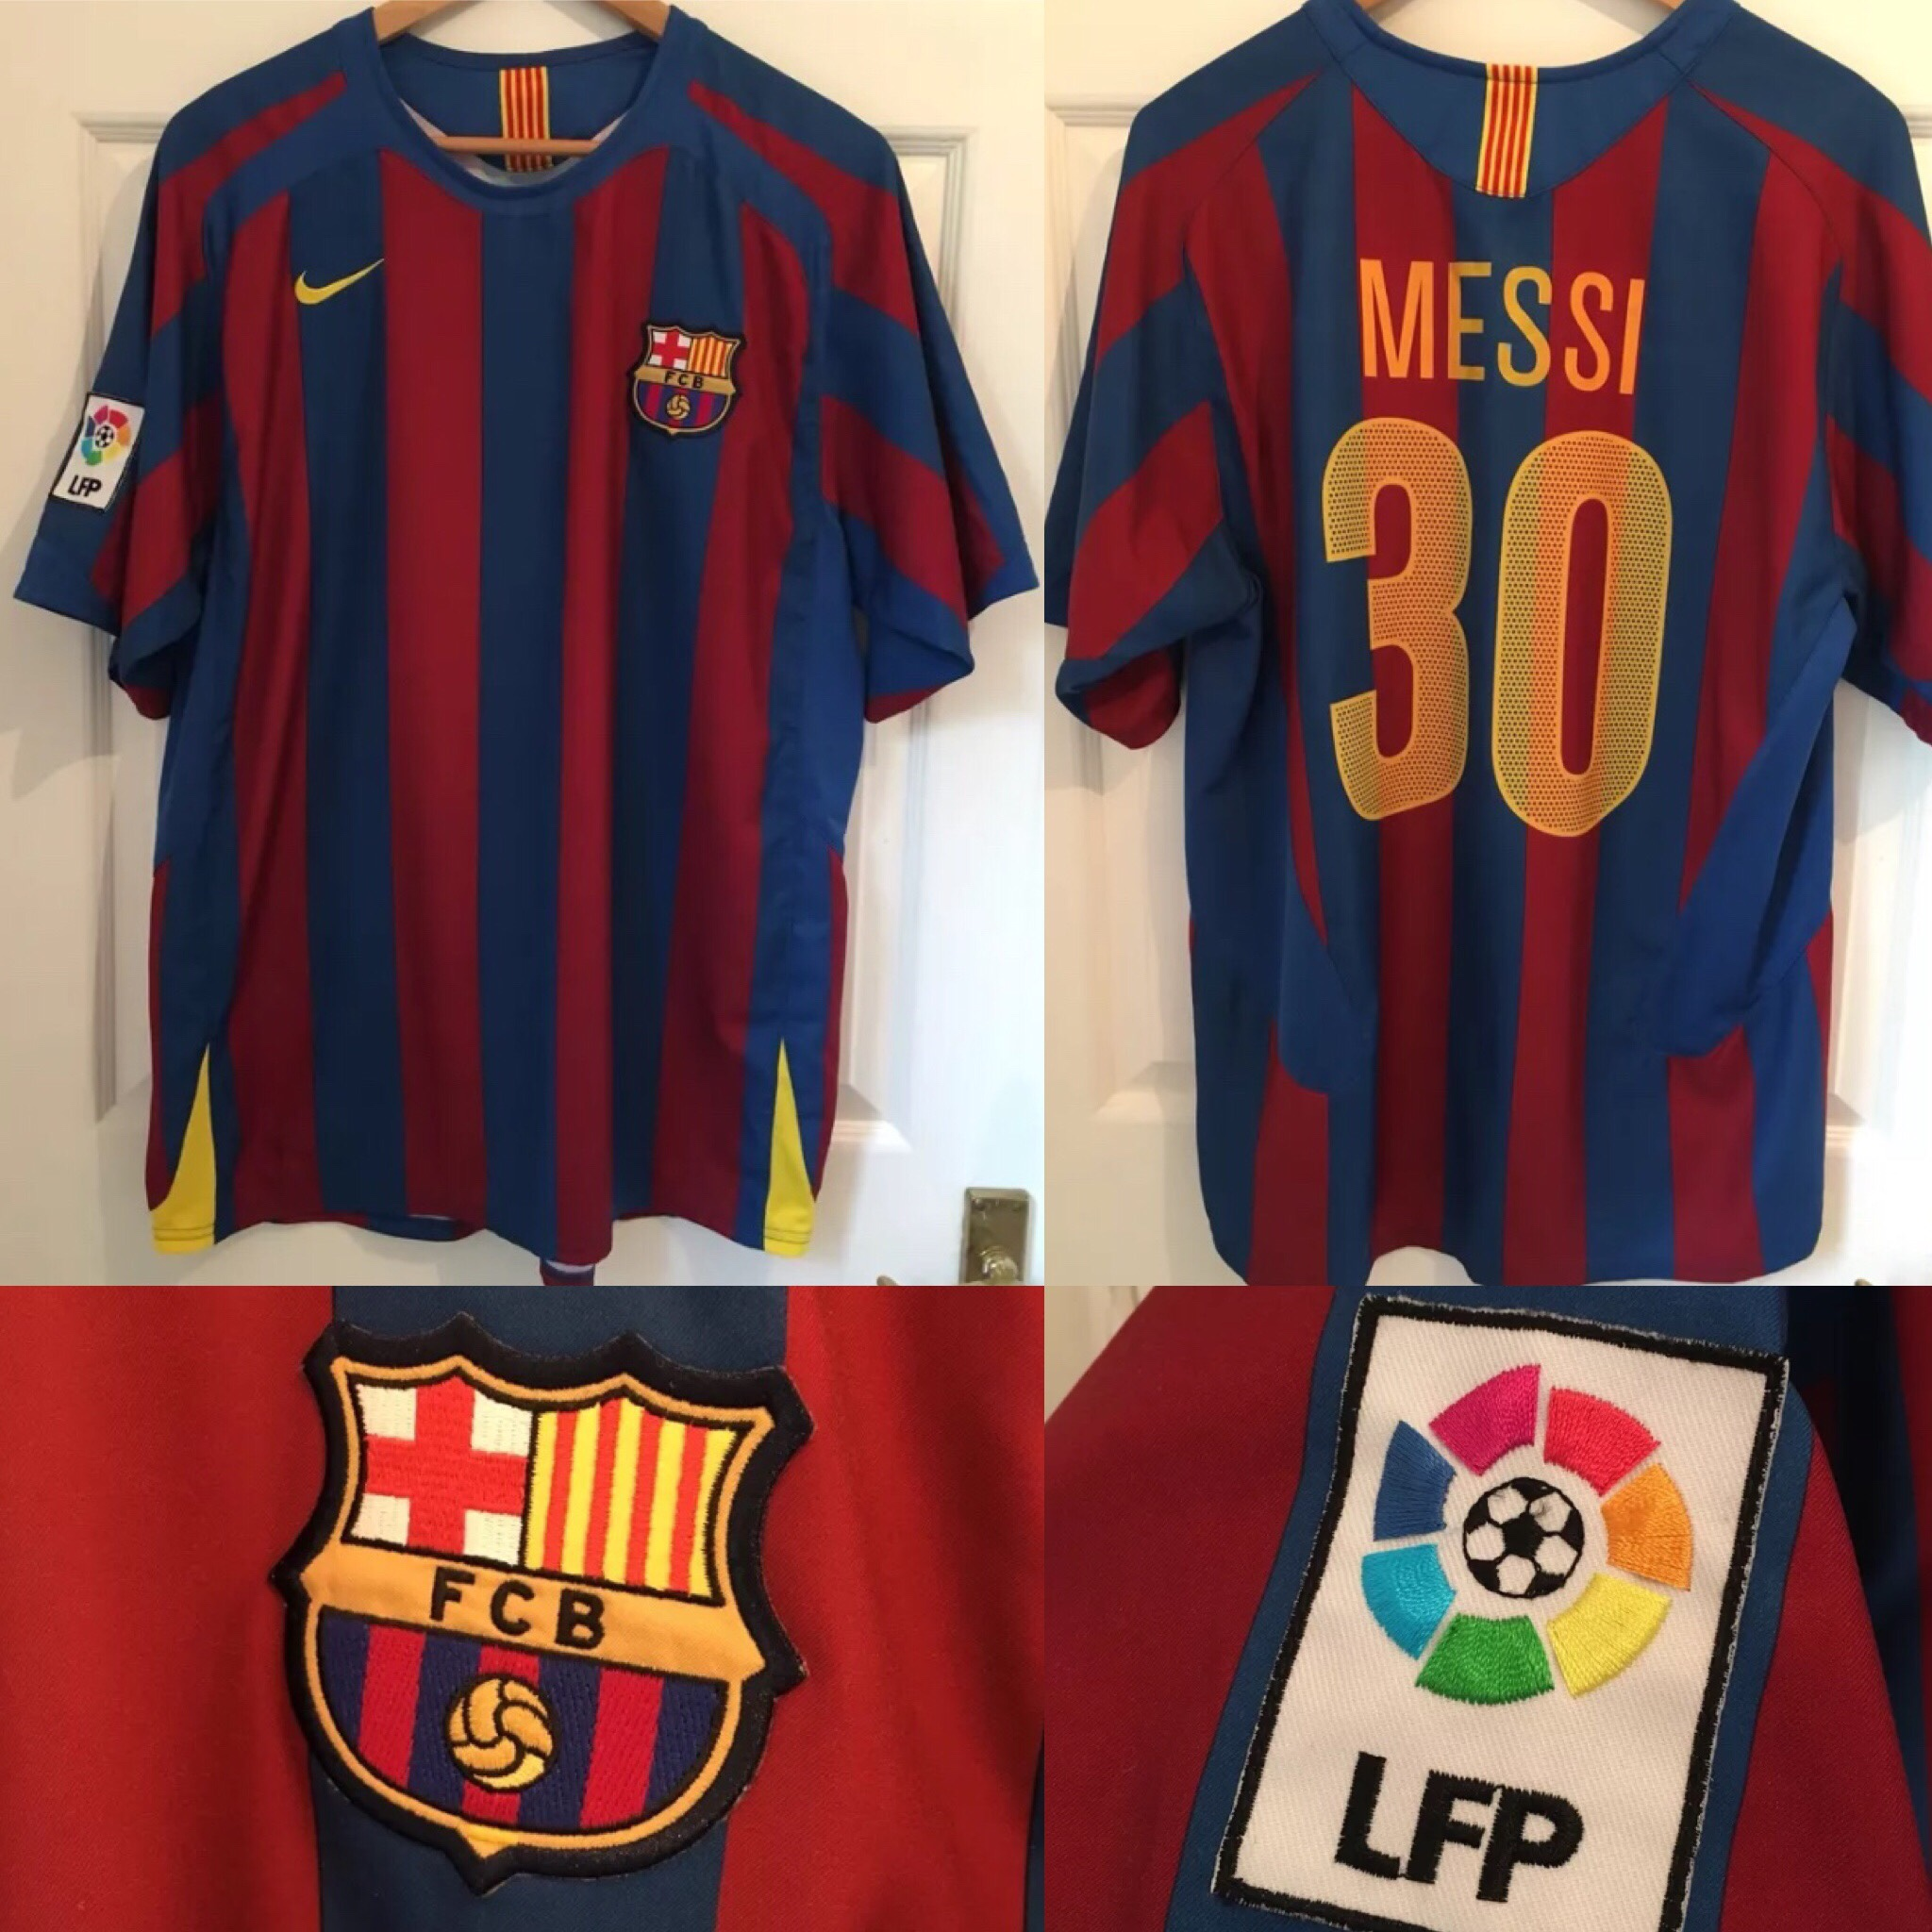 designer fashion 6b65b 365d3 MESSI #30 Barcelona Nike Home Football Shirt Jersey ...